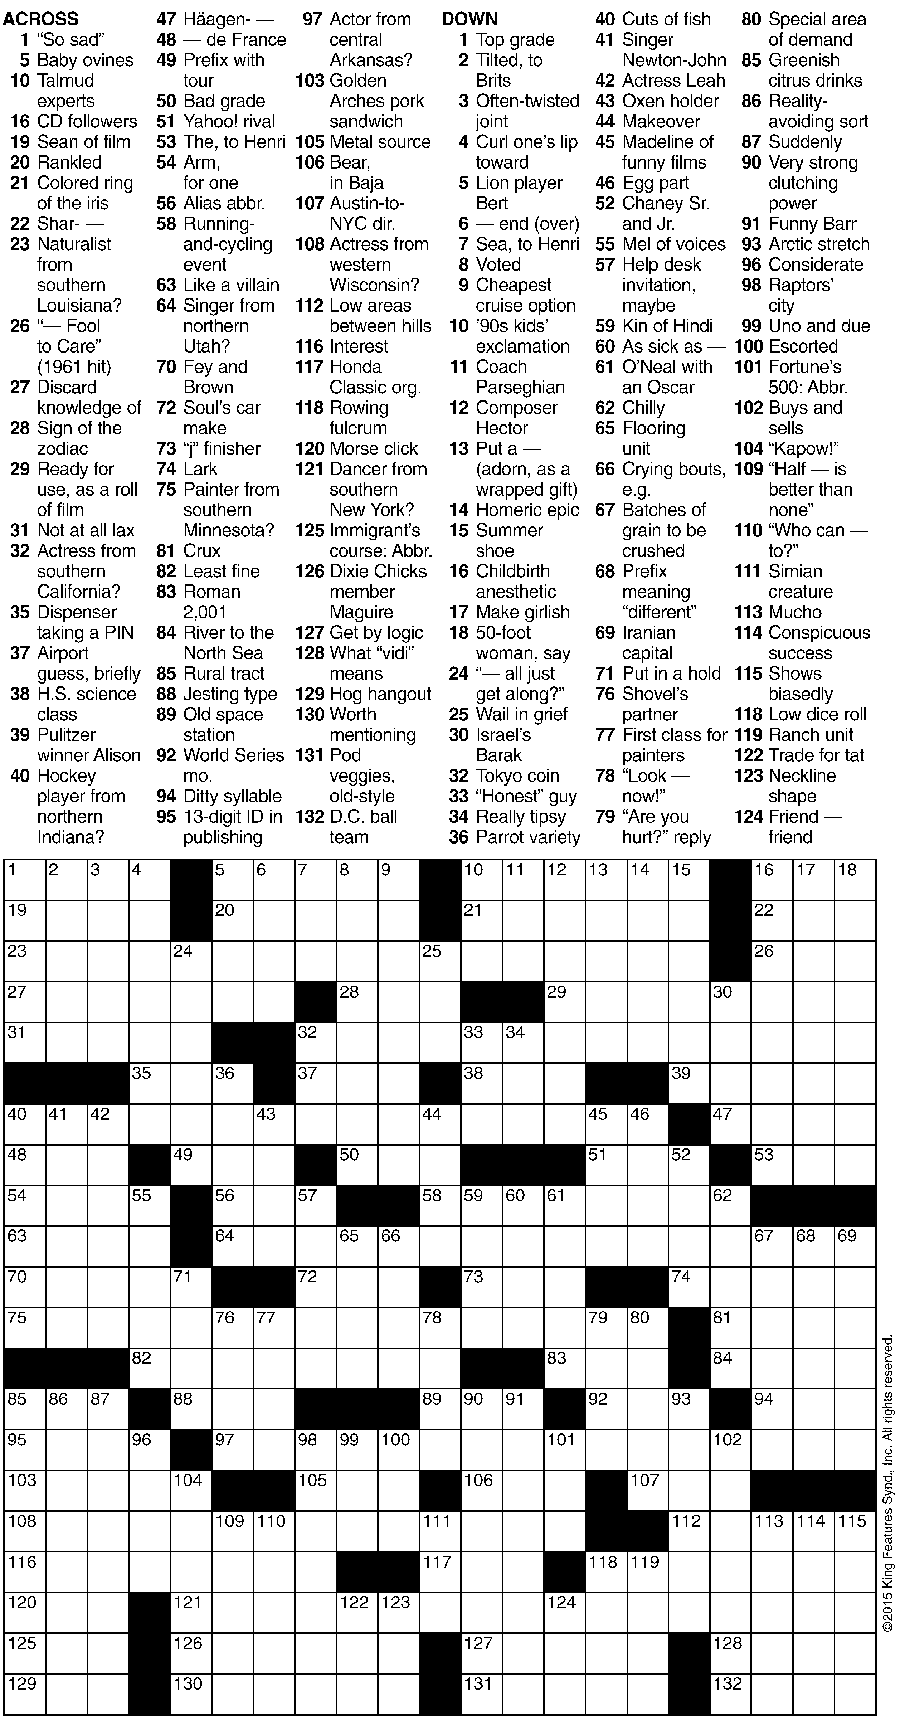 crossword1-2-c87063b1c8ef7050.png